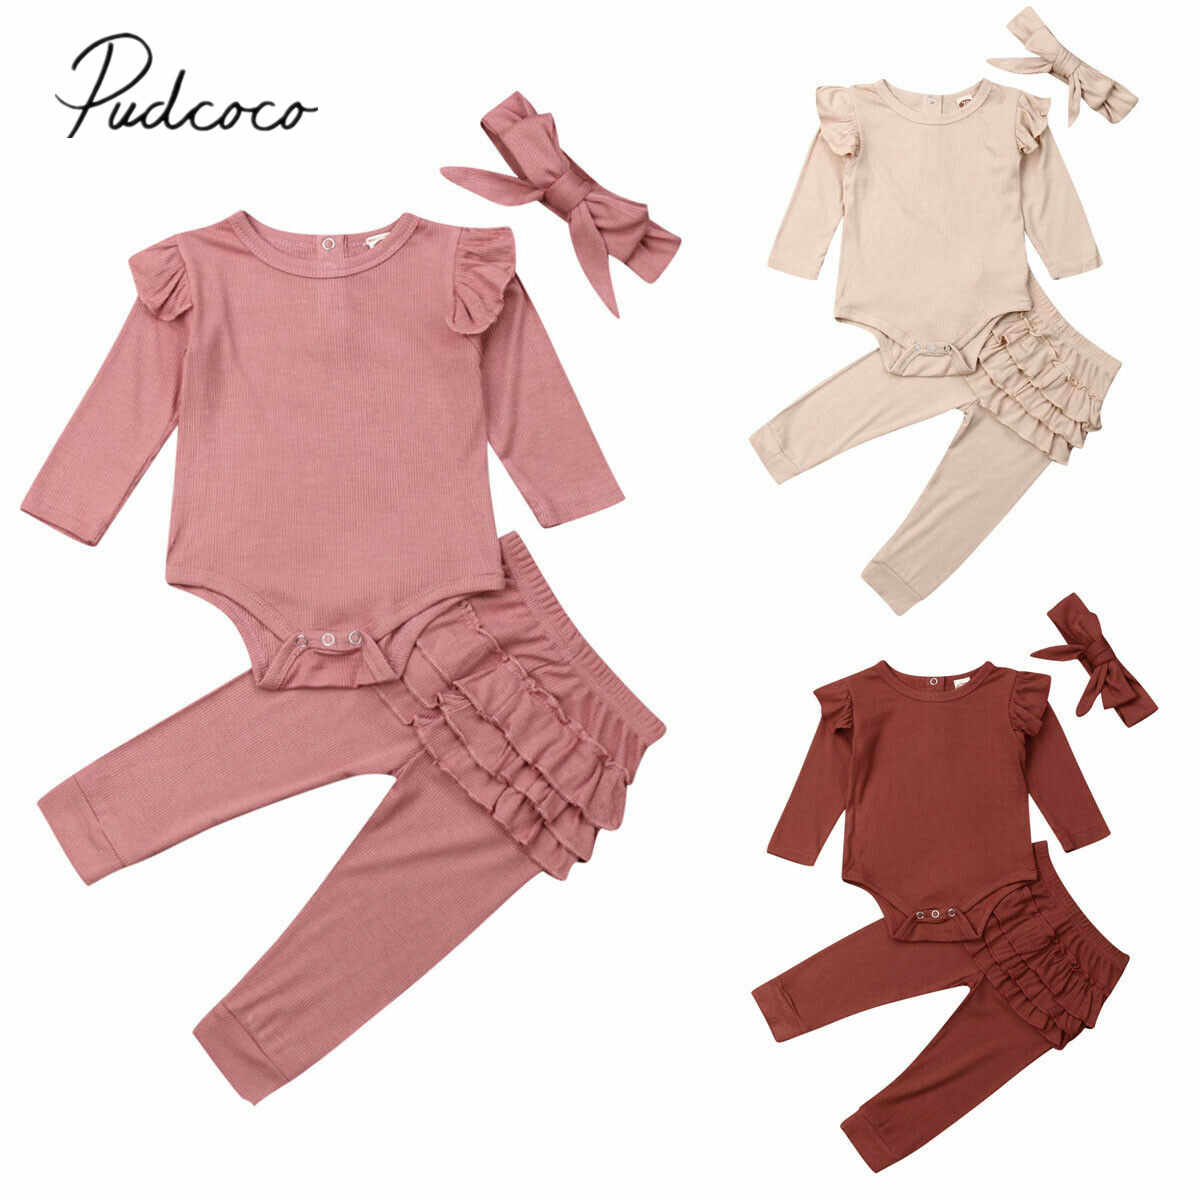 2019 Baby Spring Autumn Clothing Newborn Infant Baby Girl Solid Outfits Ribbed Clothes Romper Top Ruffle Pants Headband 3Pcs Set